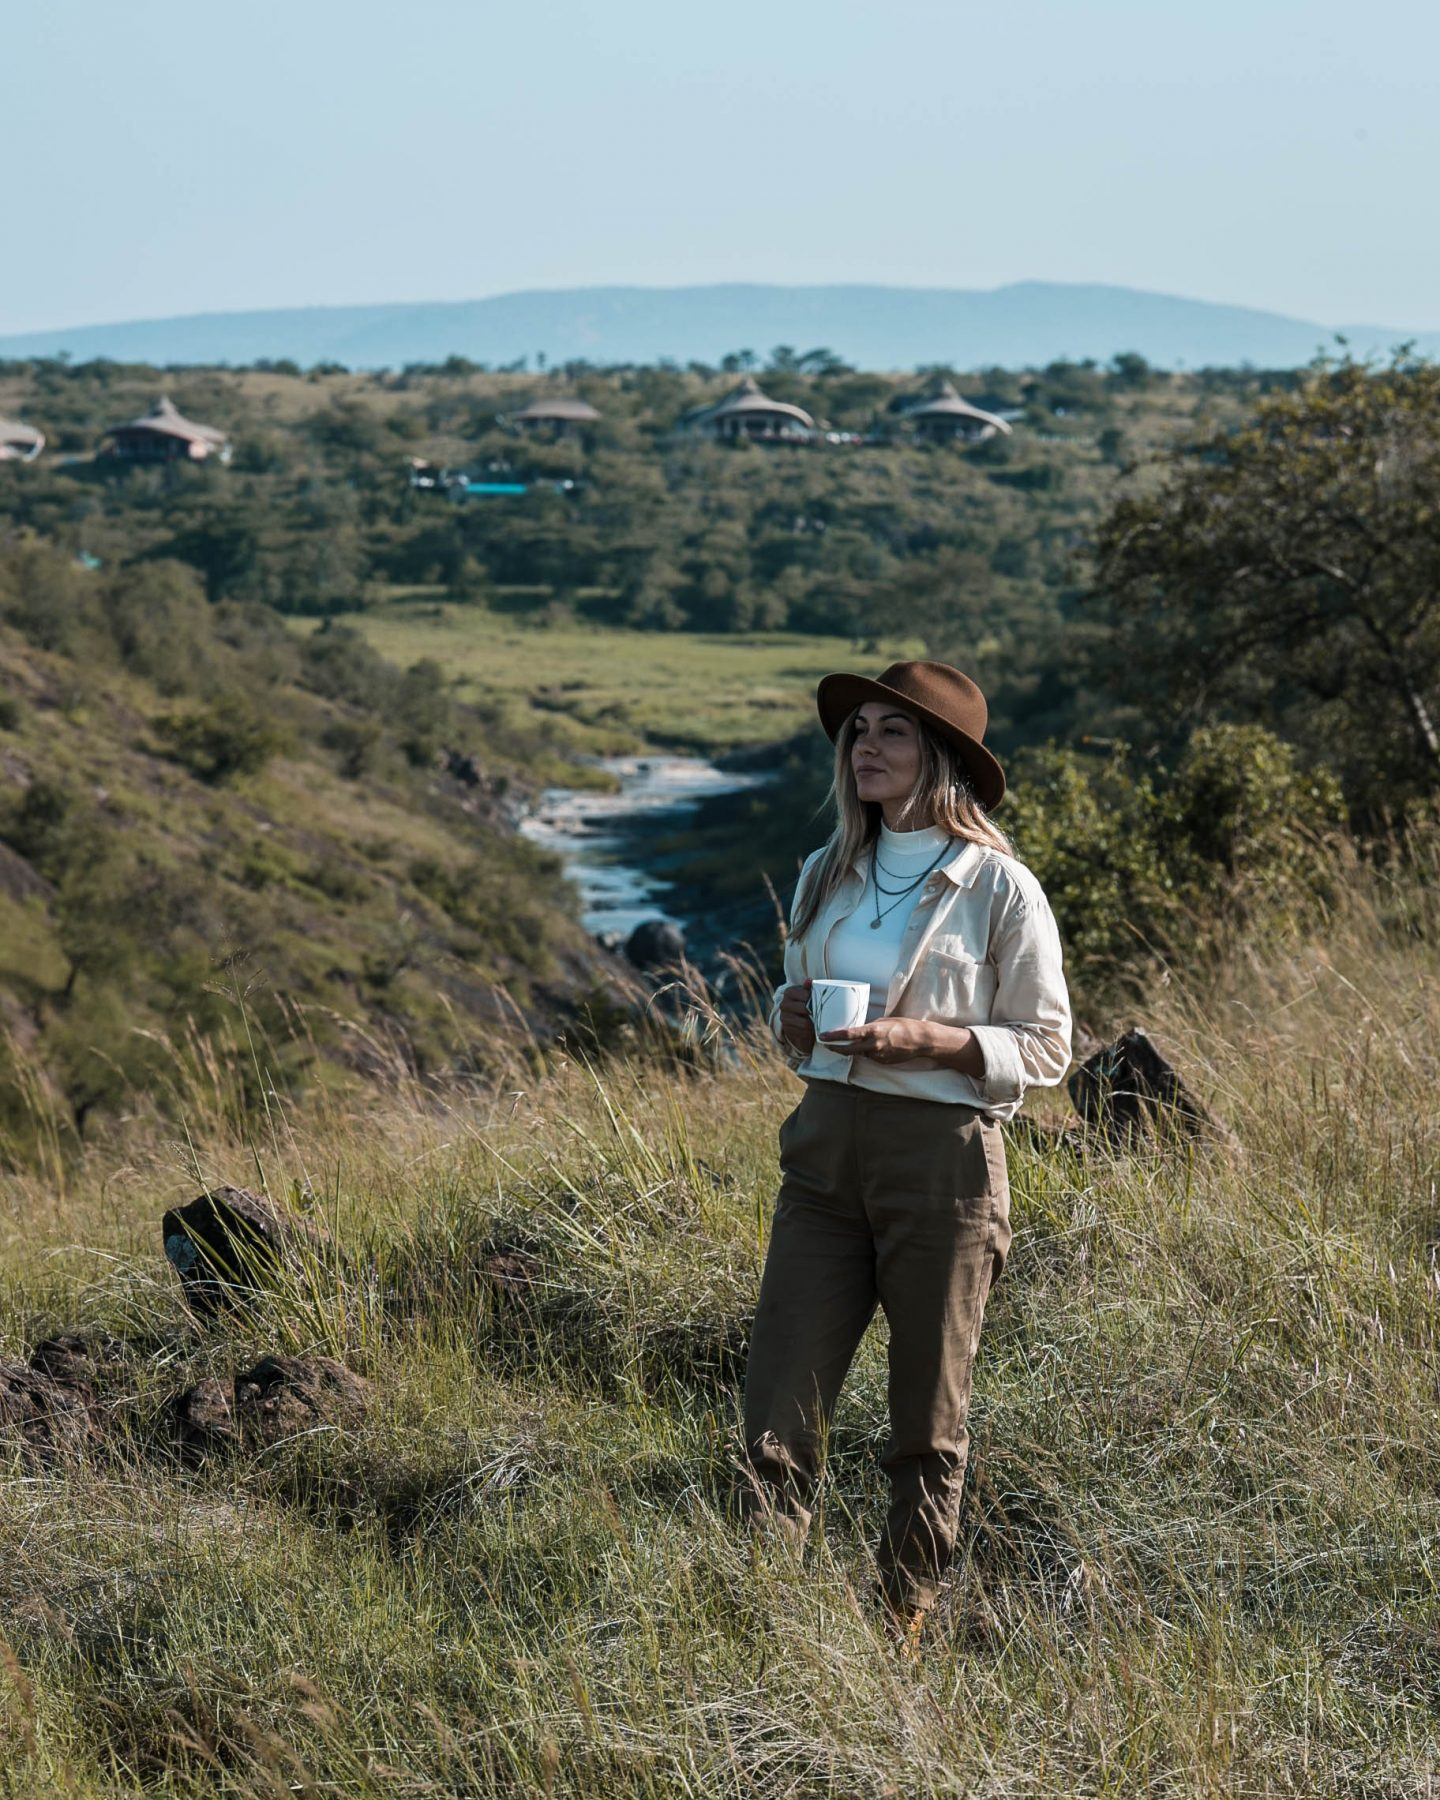 Mahali Mzuri by Virgin Limited Editions: Luxury Tented Camp in the Masai Mara